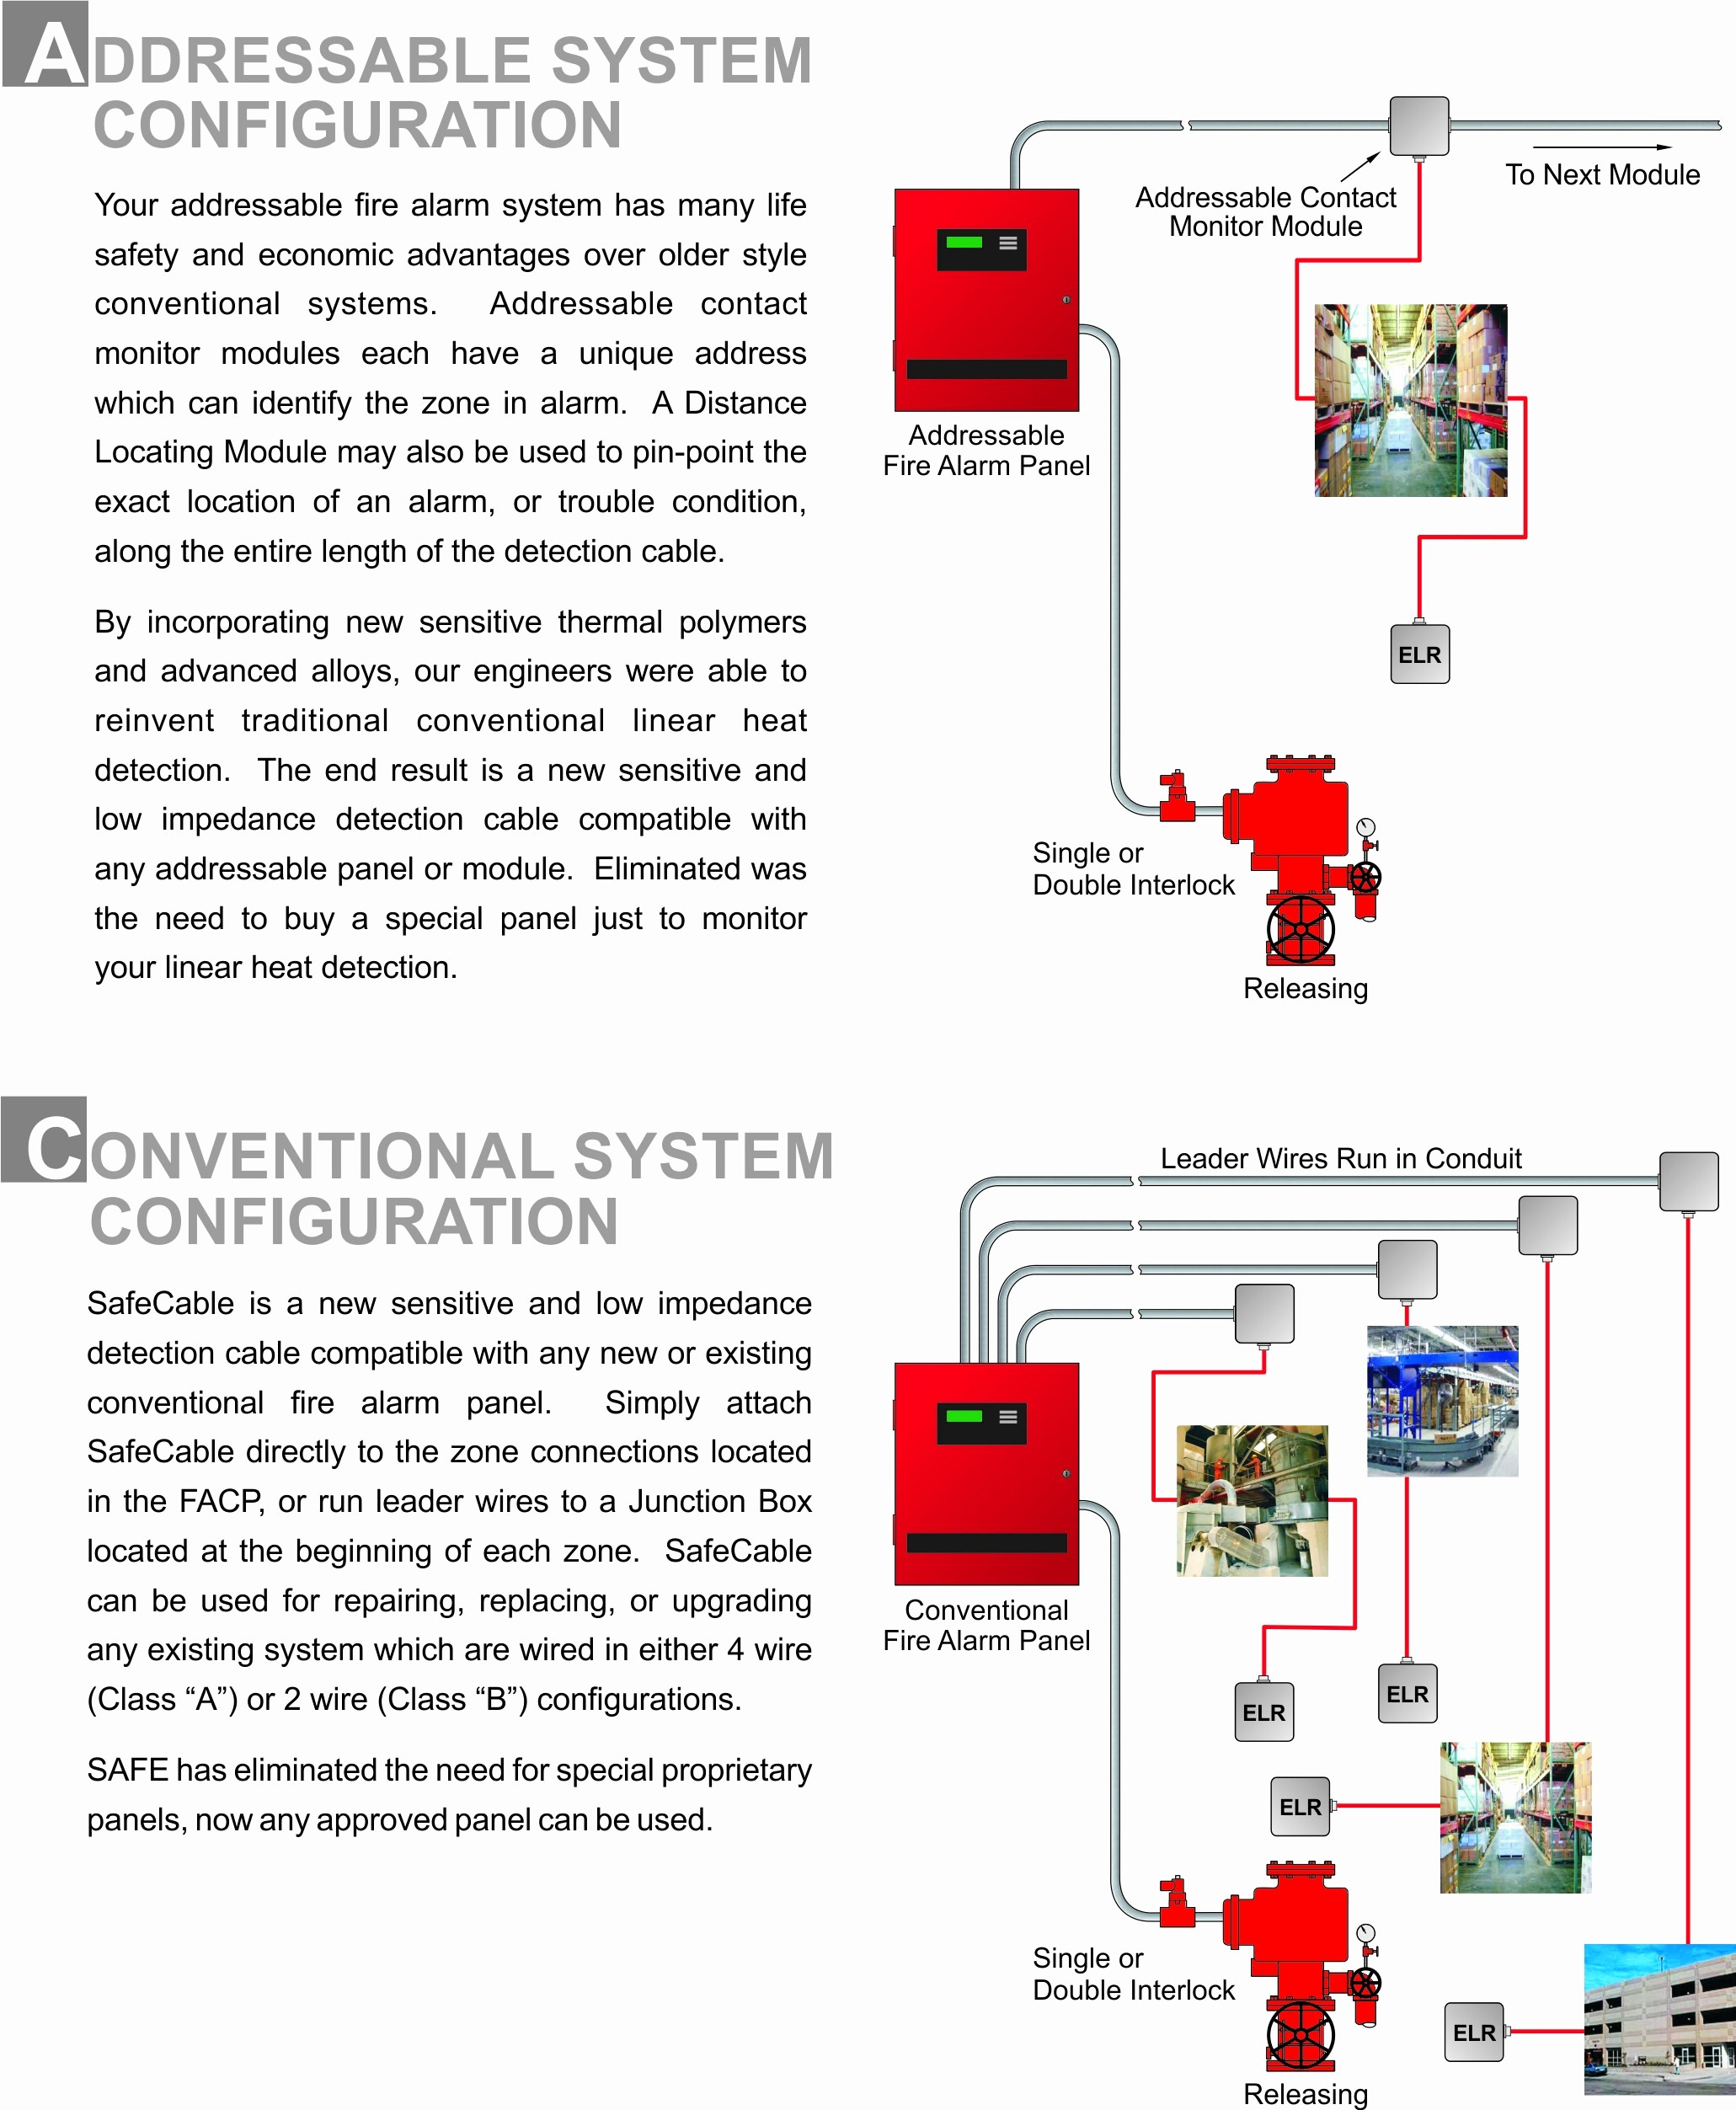 bulldog wiring diagrams three phase diagram security alarm gallery sample download for system in car valid